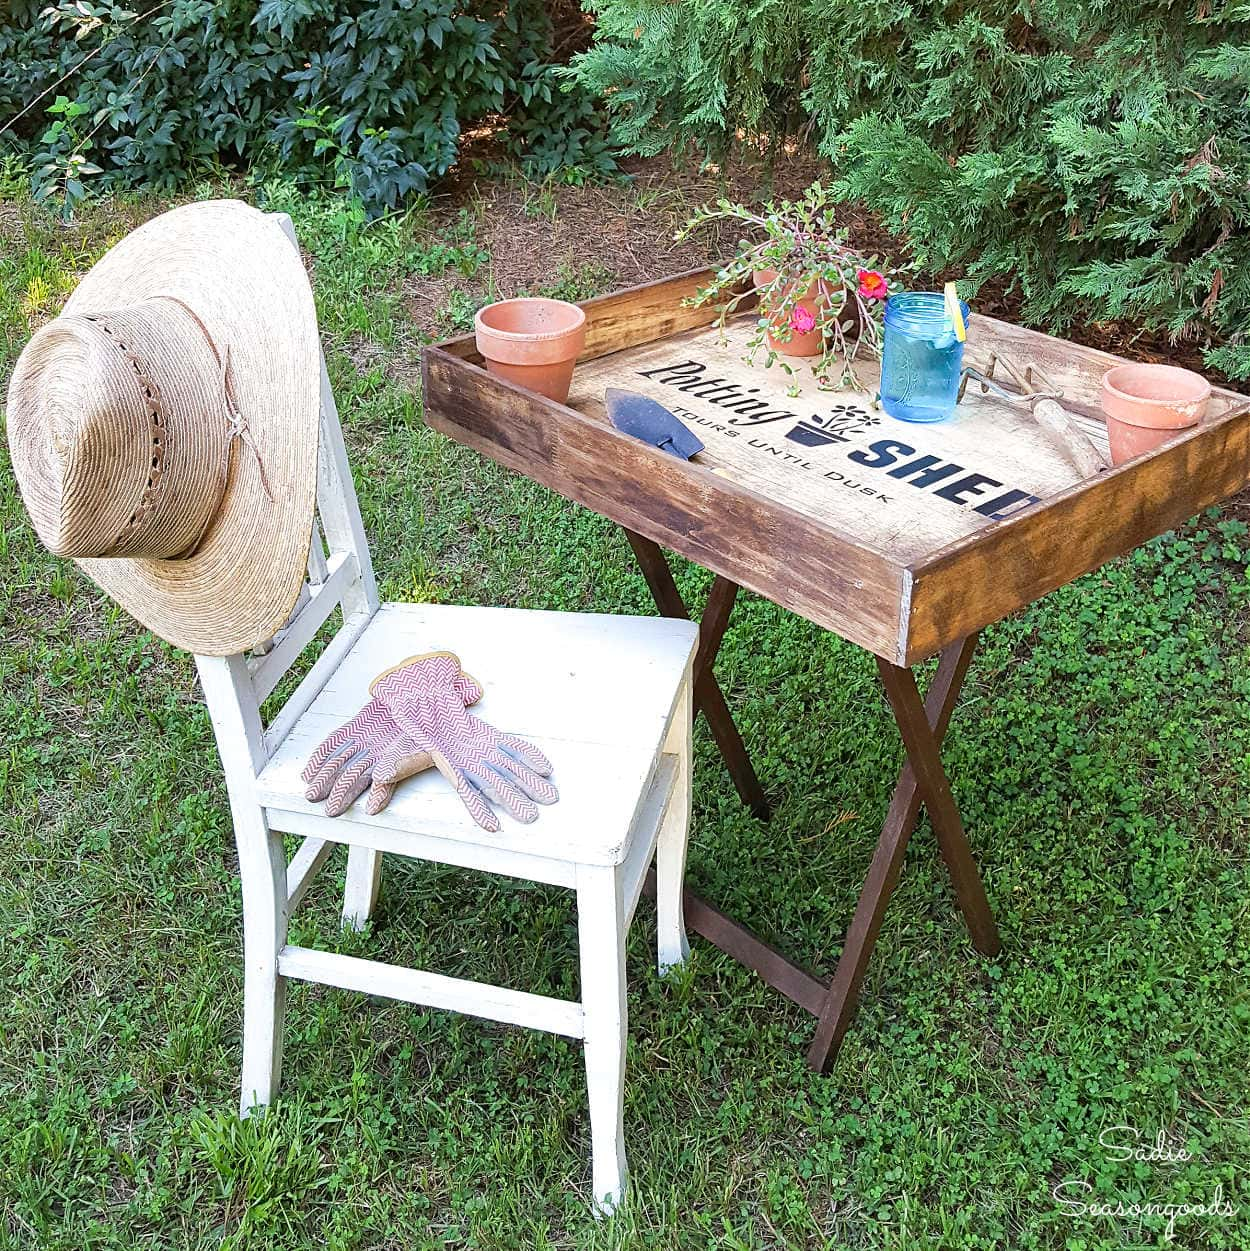 Portable Potting Bench from a Dresser Drawer